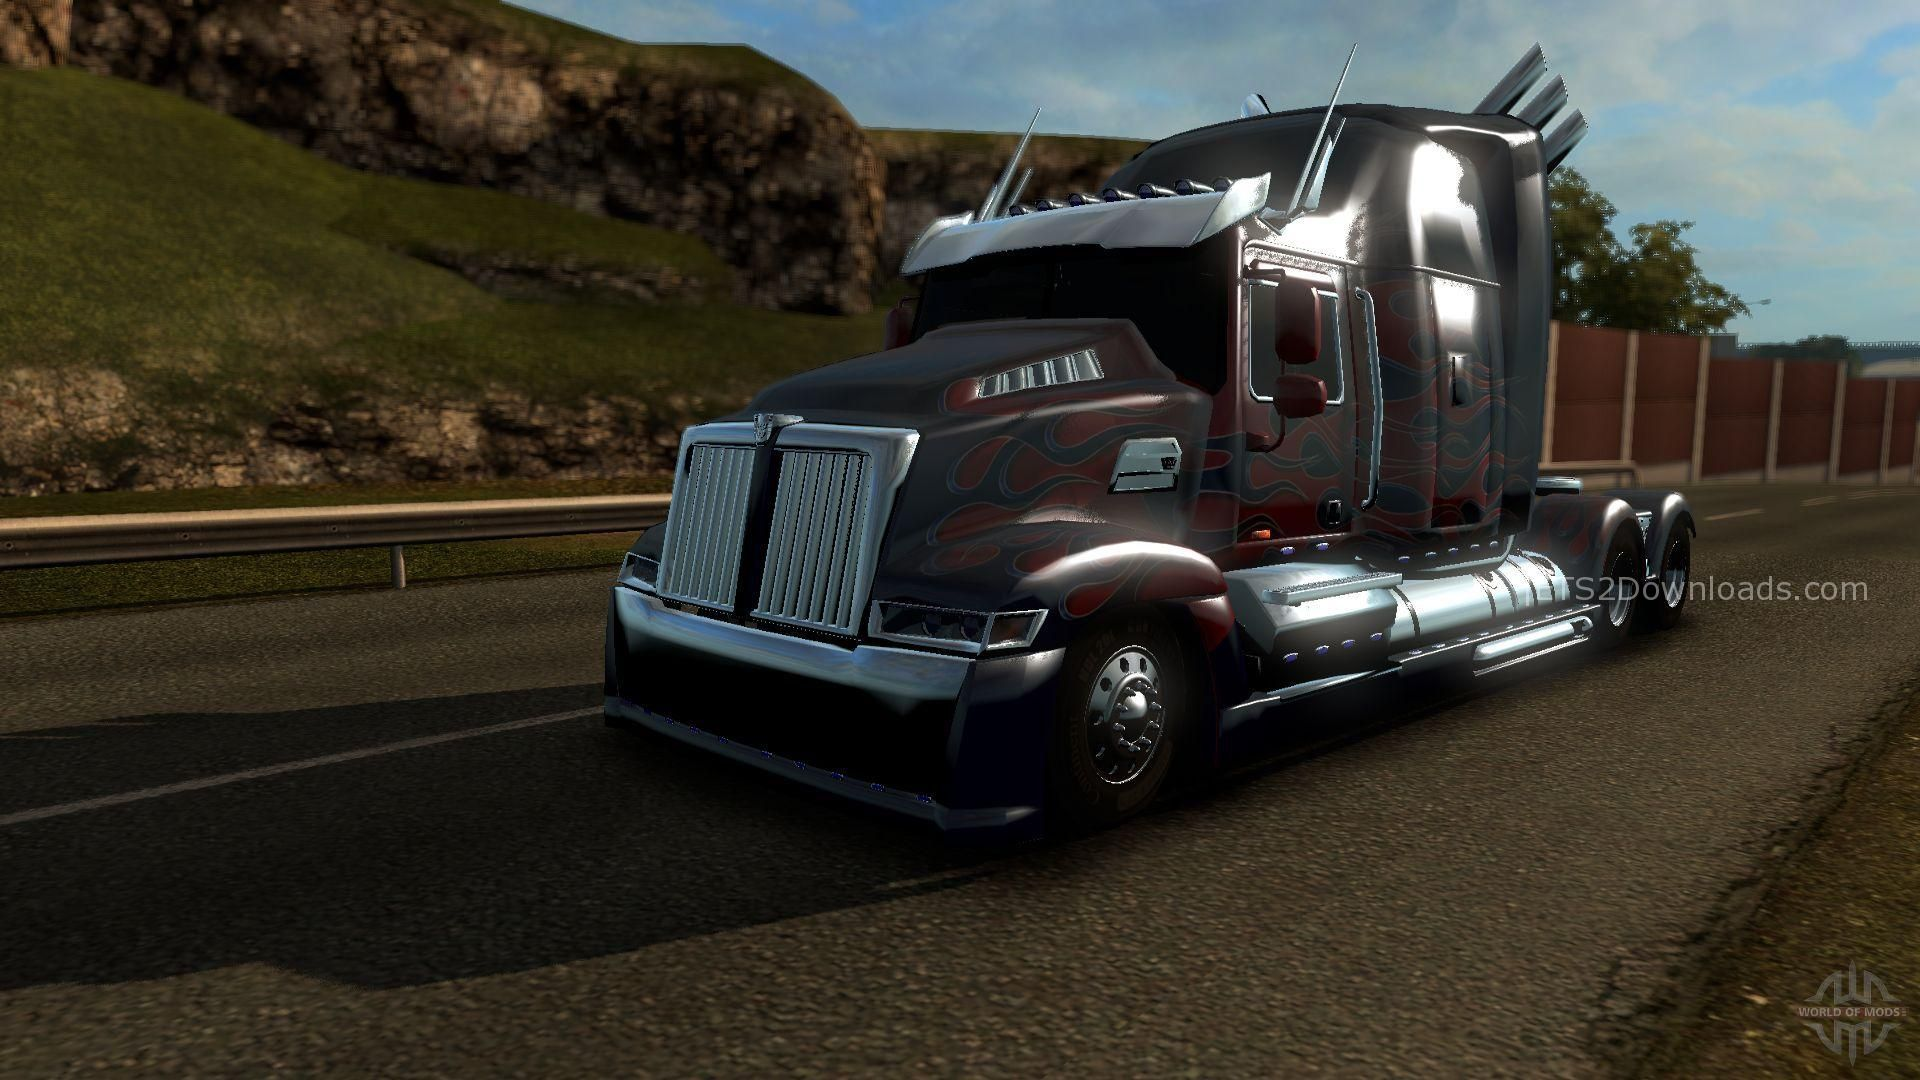 heavy-truck-optimus-prime-transformers-1